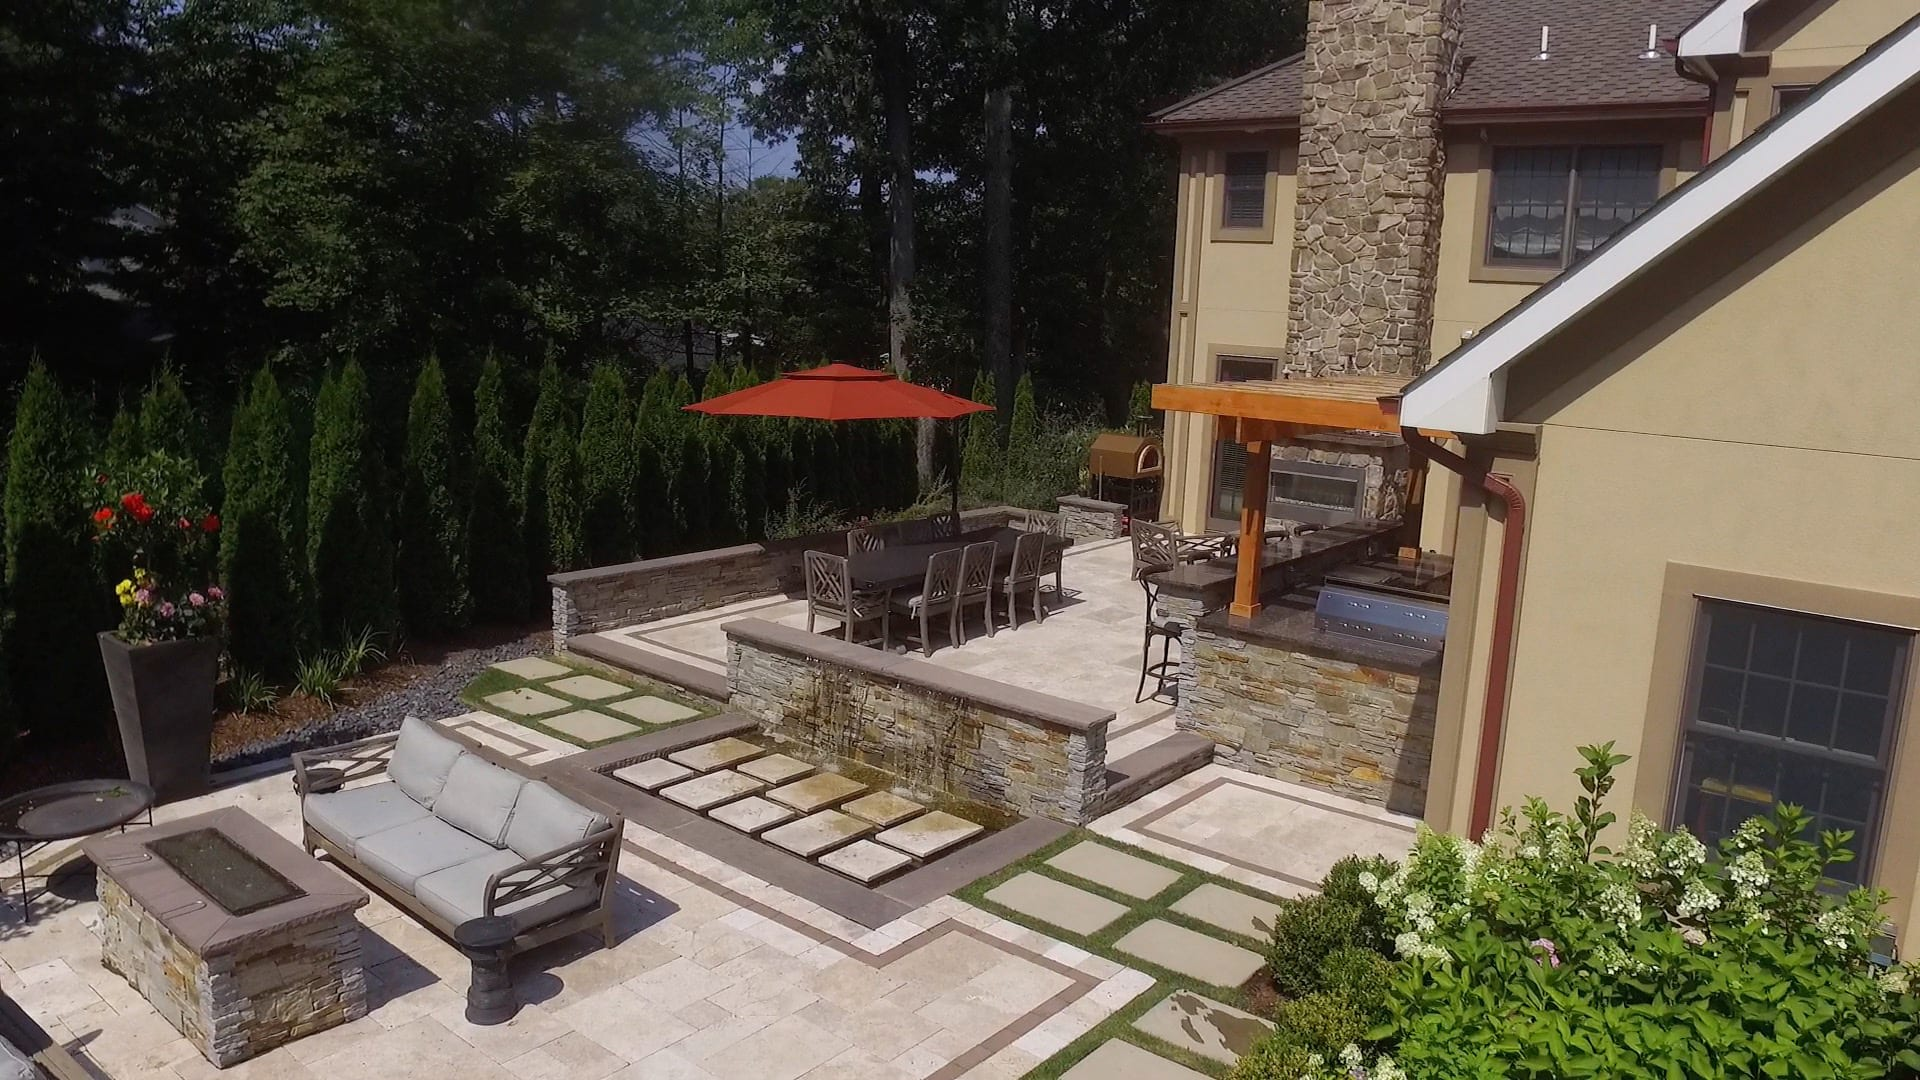 Outdoor Kitchen, Bar, Dining, and Seating with Firepit